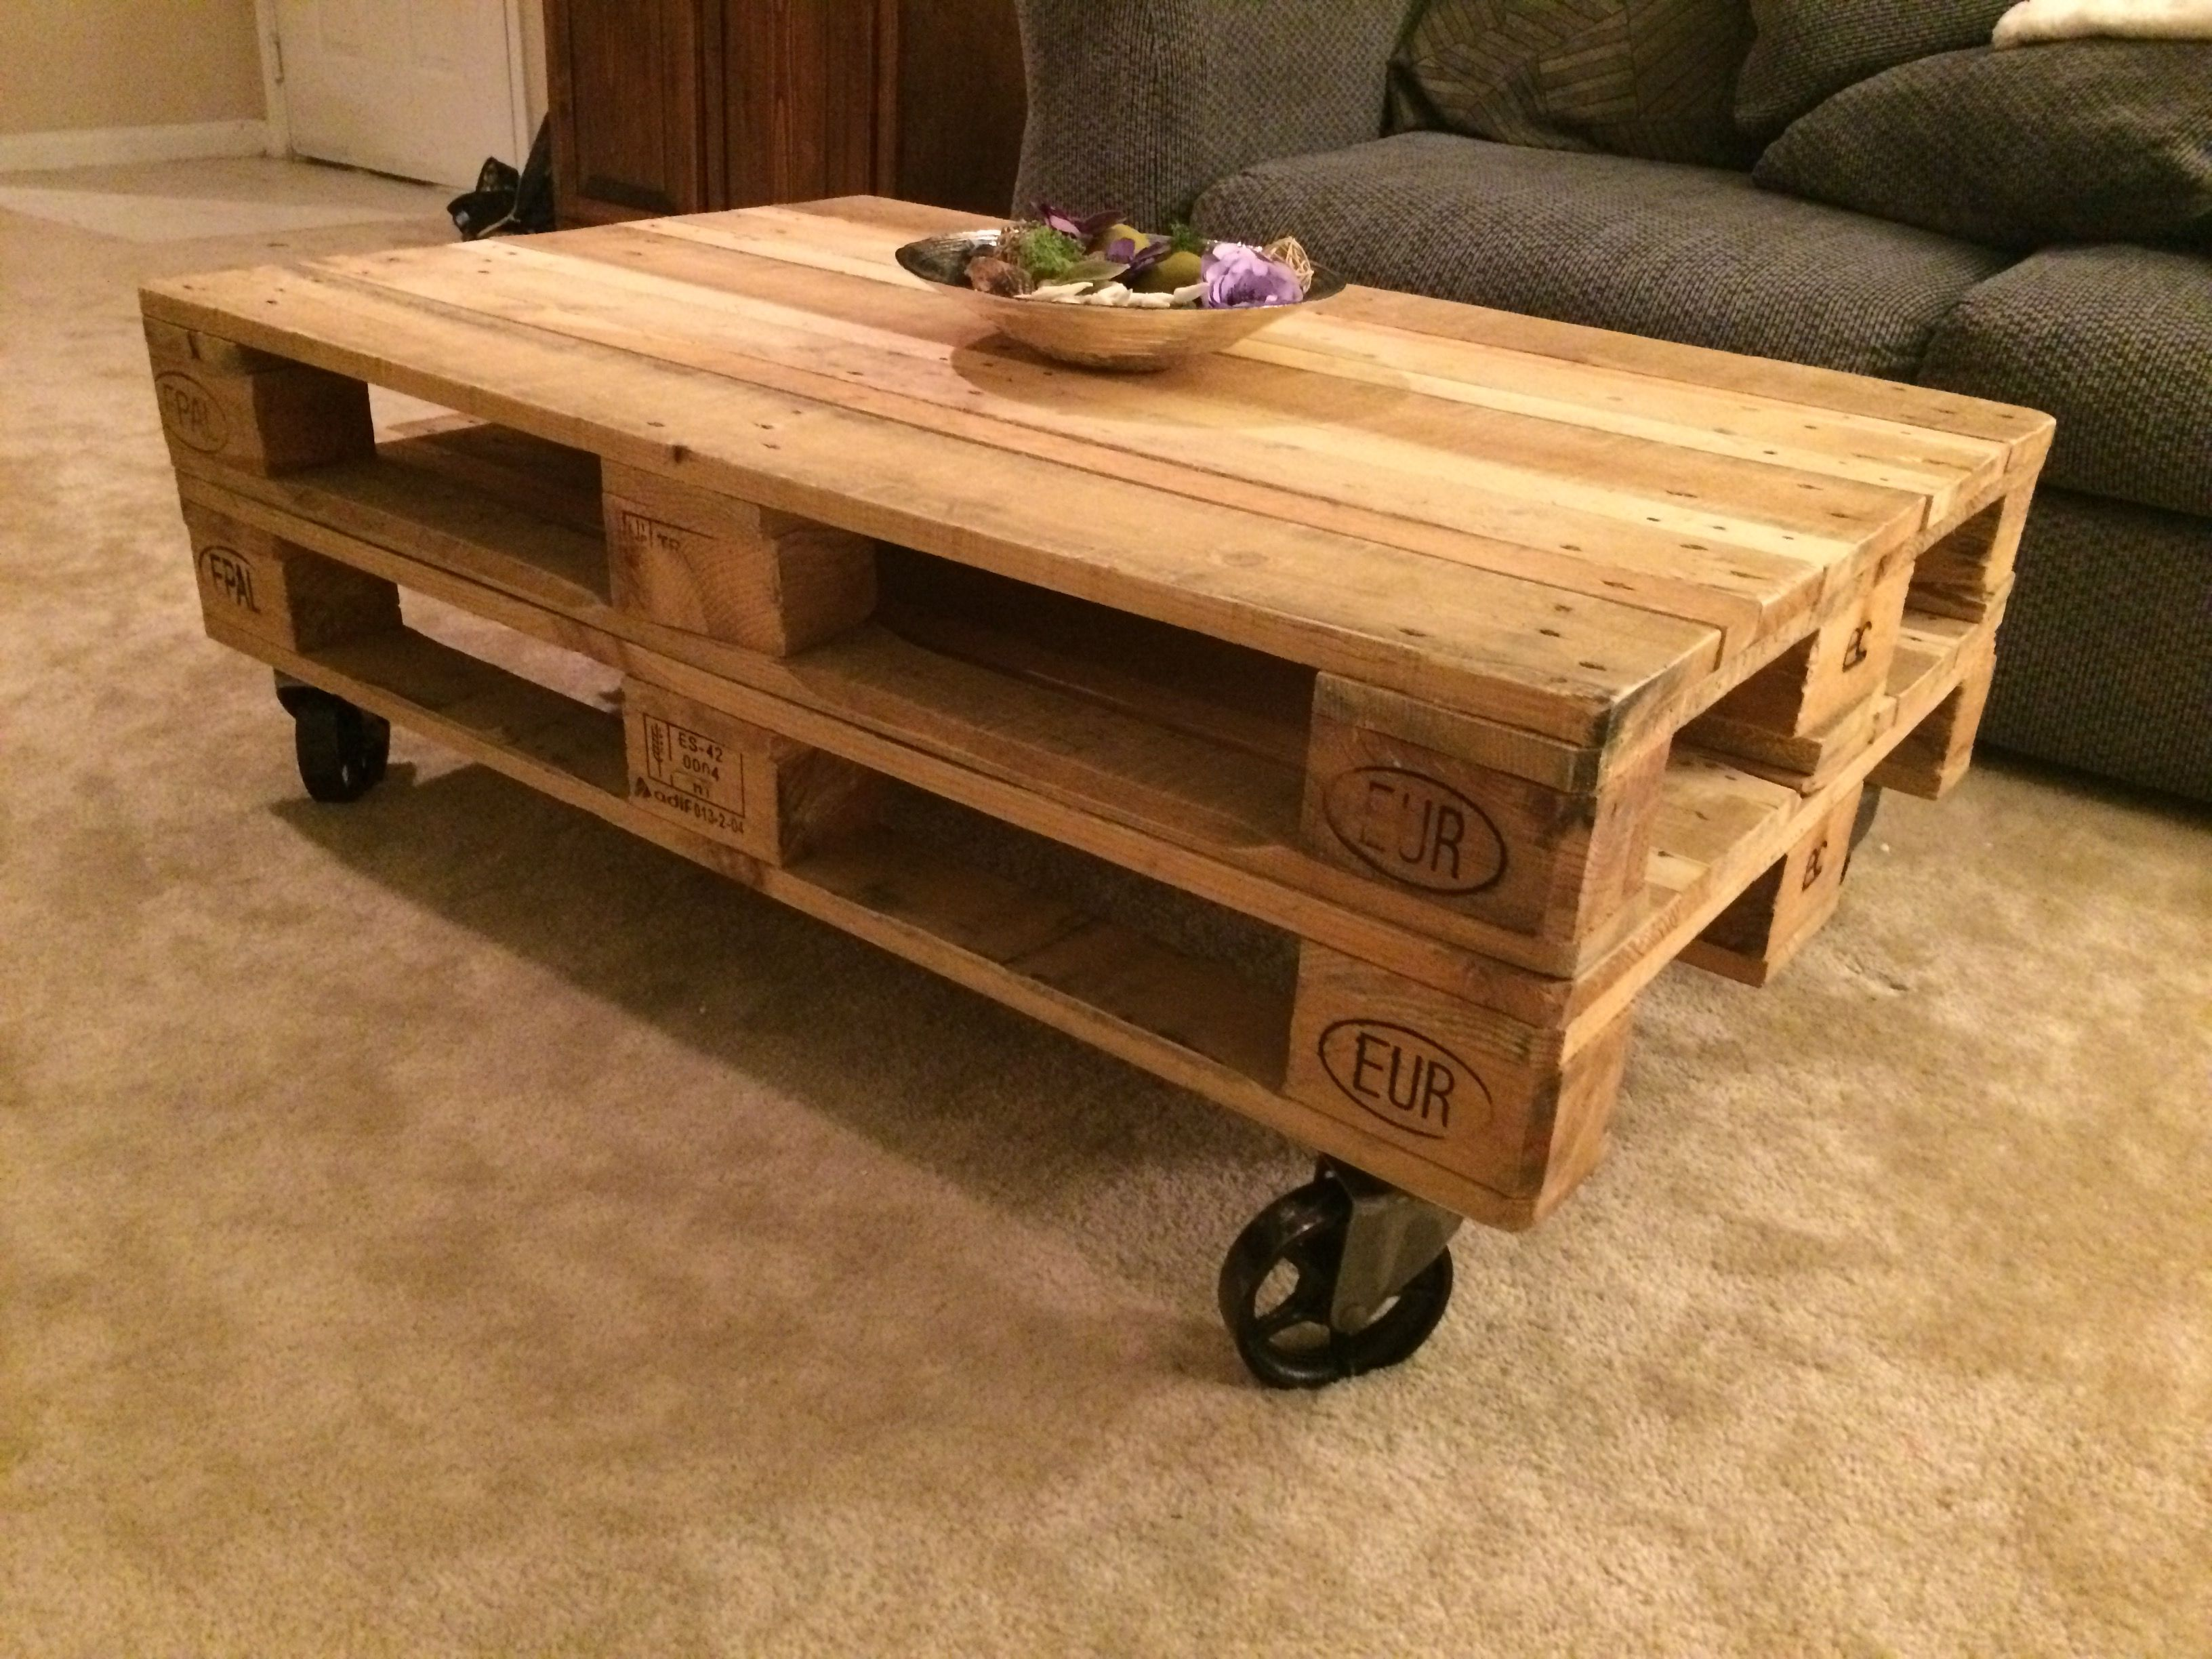 Very Cool Coffee Table Made From Double Stacked Reclaimed Wood Pallets On Top Of Spoked Vintag Coffee Table With Wheels Coffee Table With Casters Coffee Table [ 2448 x 3264 Pixel ]